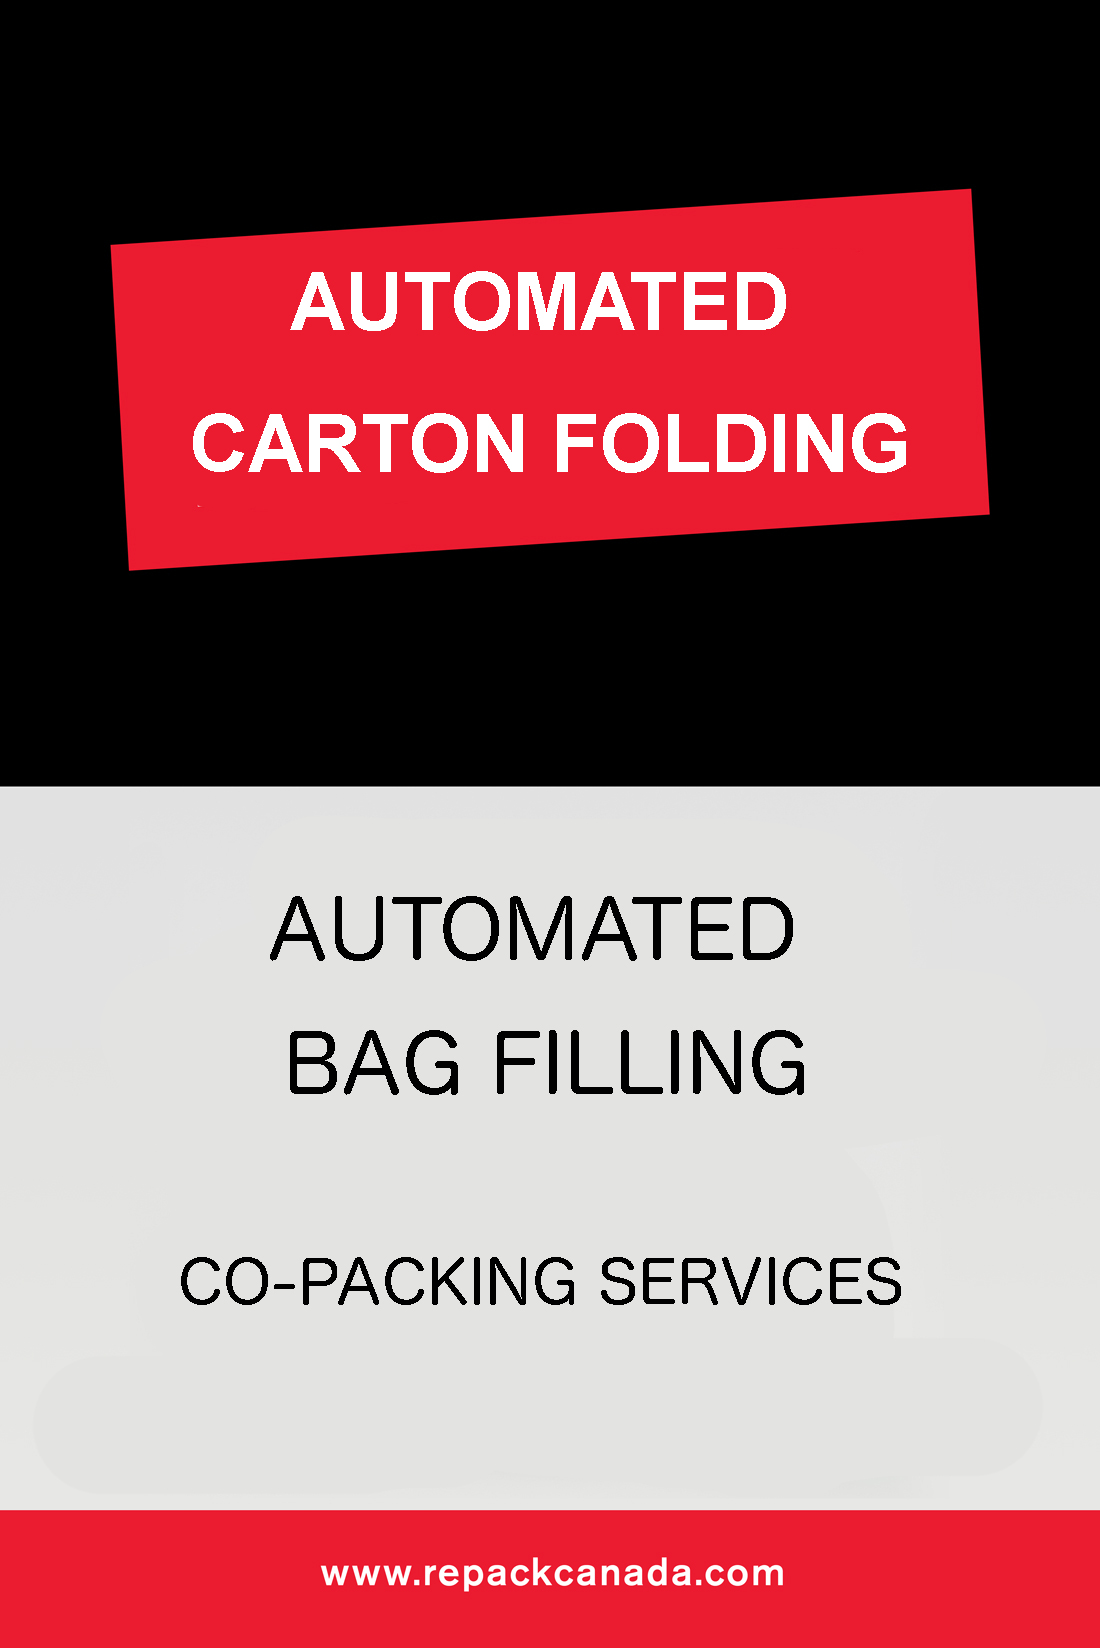 Automated Cartoning and Automated Bag Filling co-packing services by Repack Canada